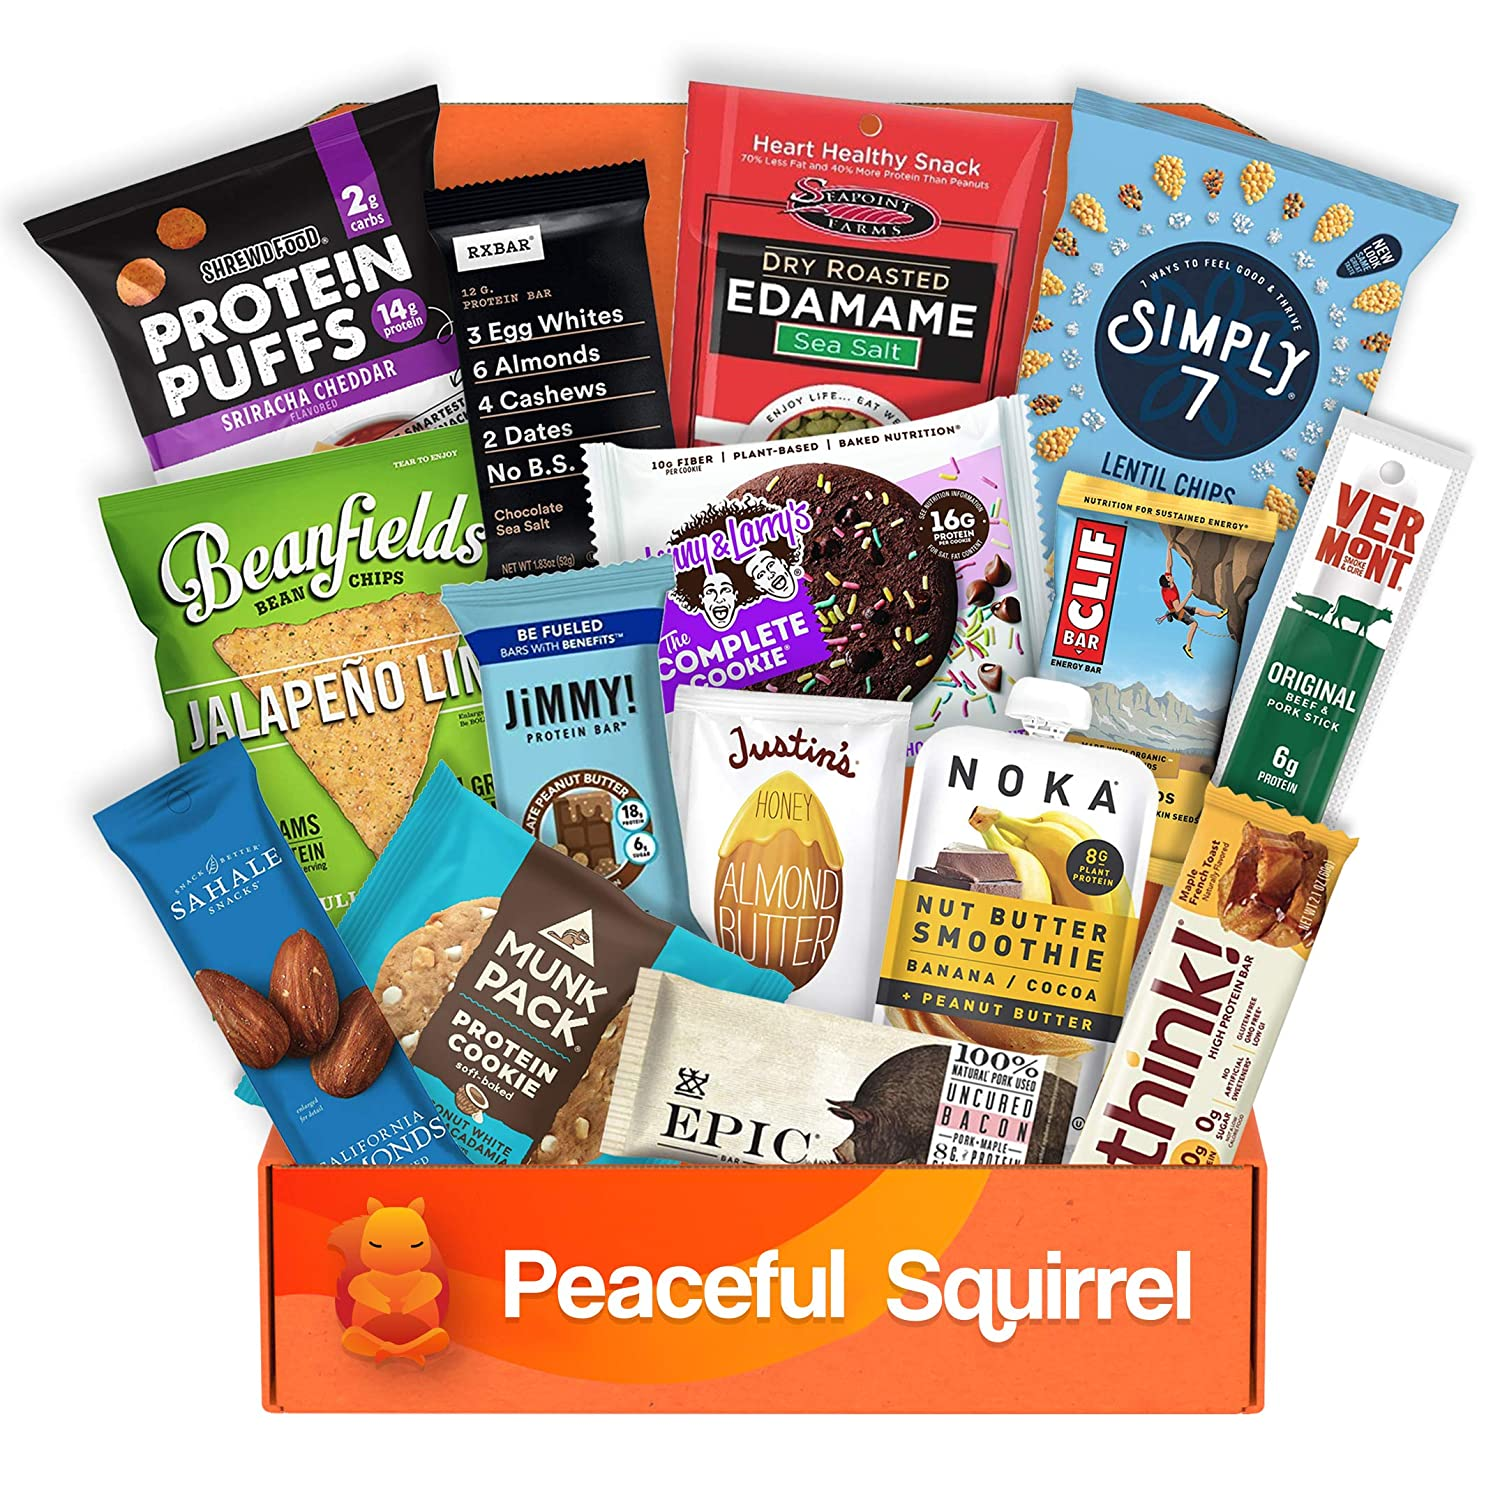 Peaceful Squirrel Variety, HIGH PROTEIN Curated Snack Box, Hand Selection of Your Favorite Premium Healthy High Protein Fitness Snacks, Custom Variety, 15 -Piece Premium Snack Box